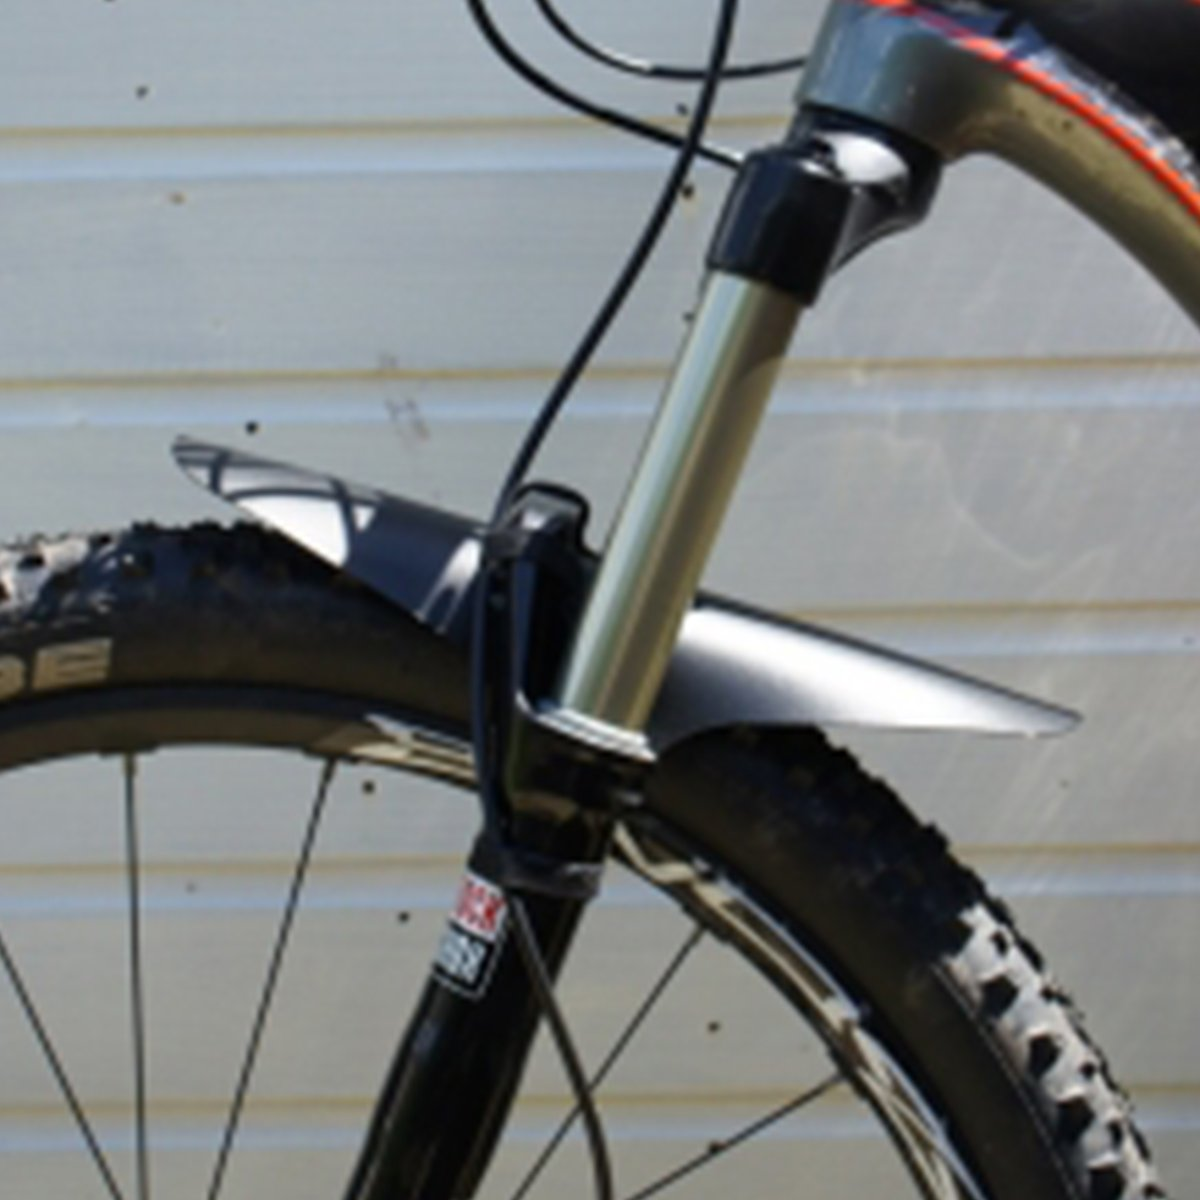 sks mudguards fitting instructions